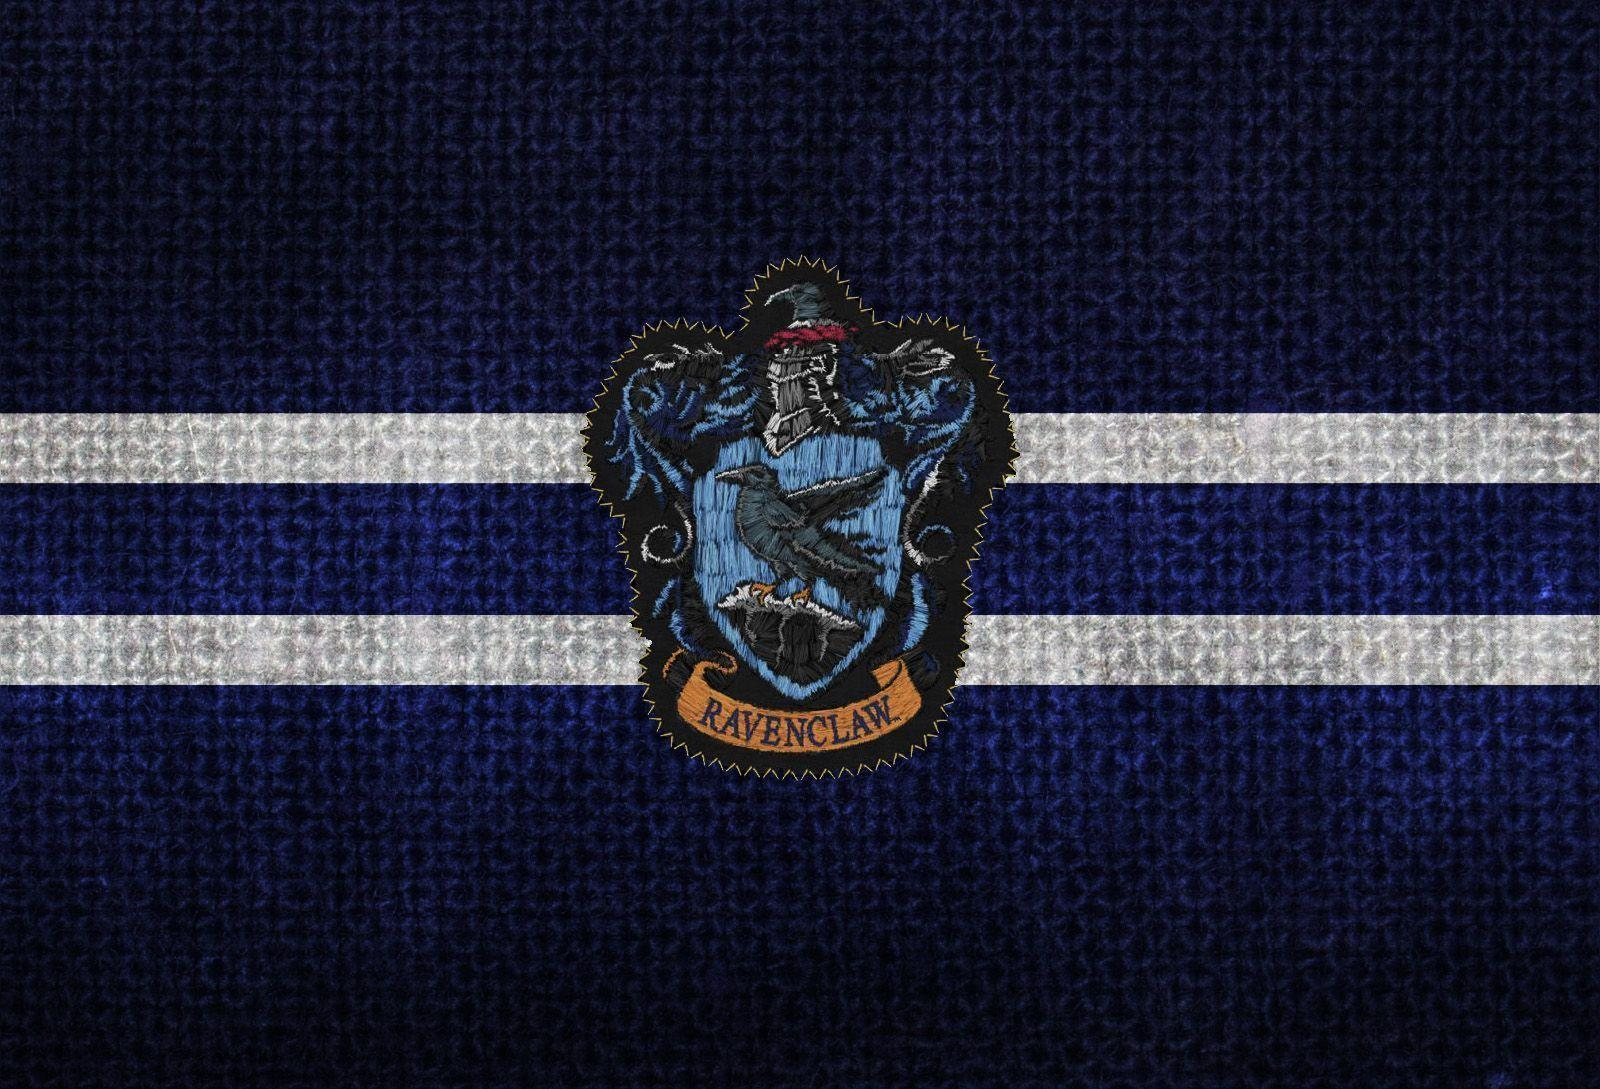 Images For Ravenclaw Wallpaper